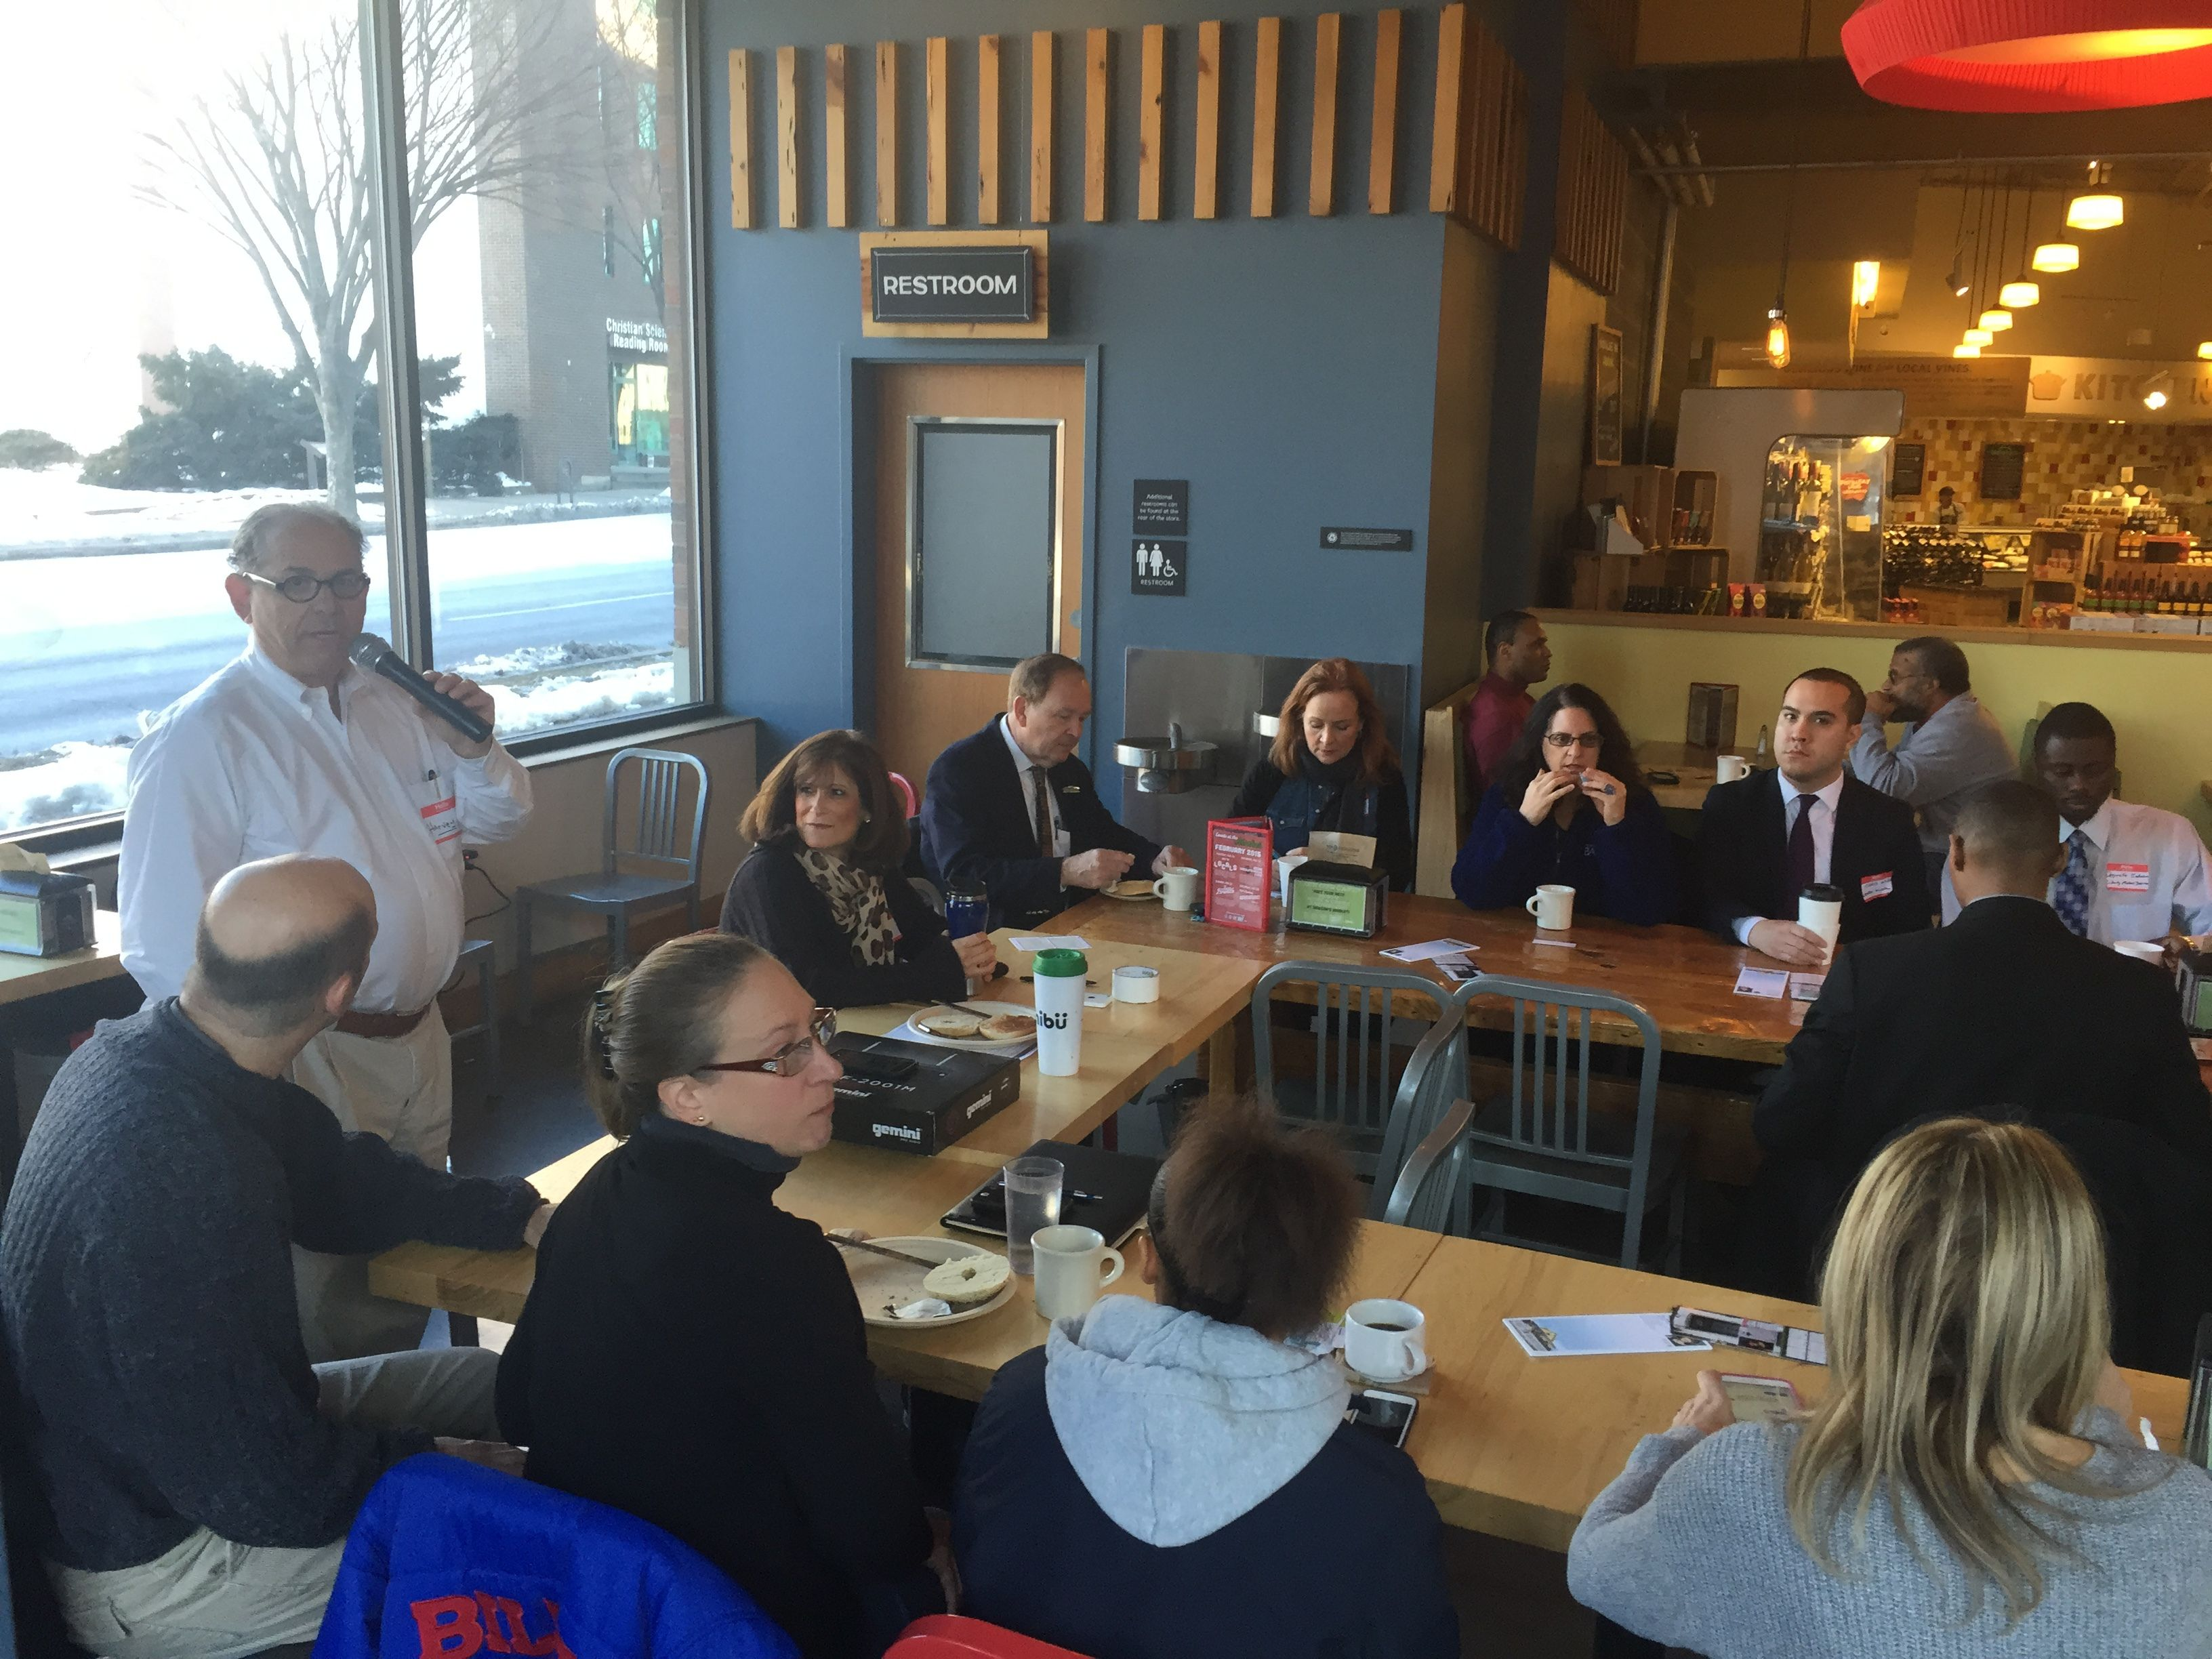 Rockville Friday Morning Real Estate Coffee House Meetup